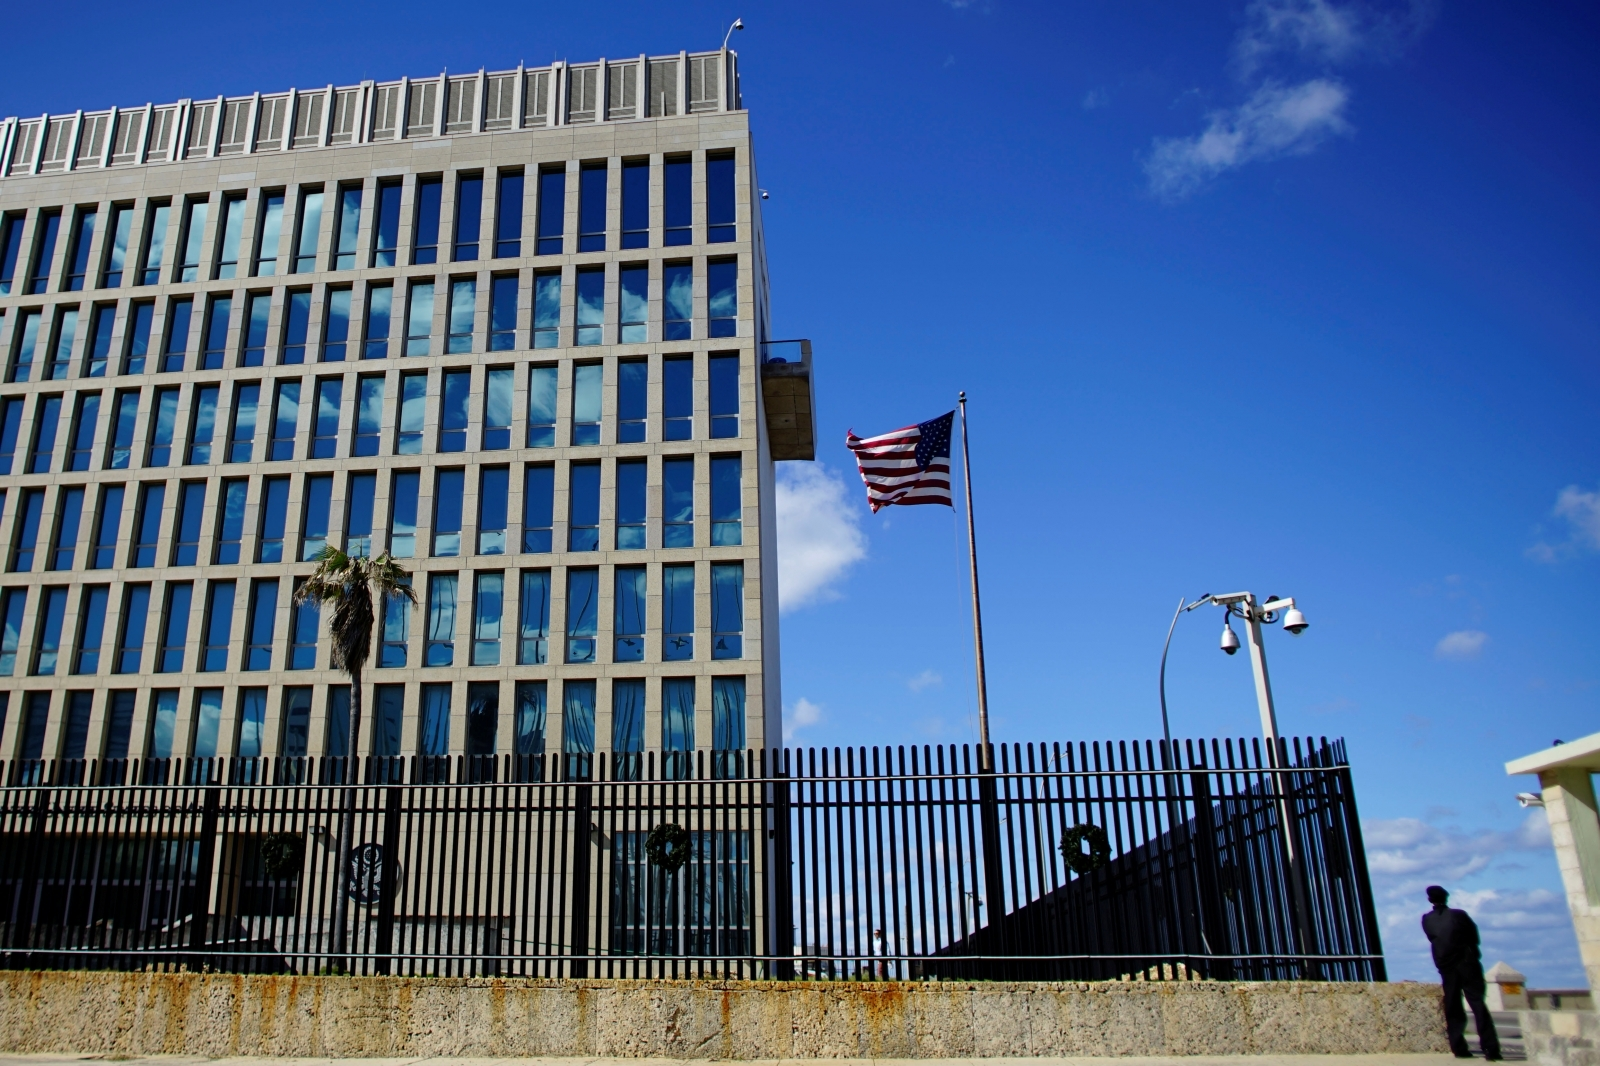 Health problems of United States diplomats in Cuba still a mystery